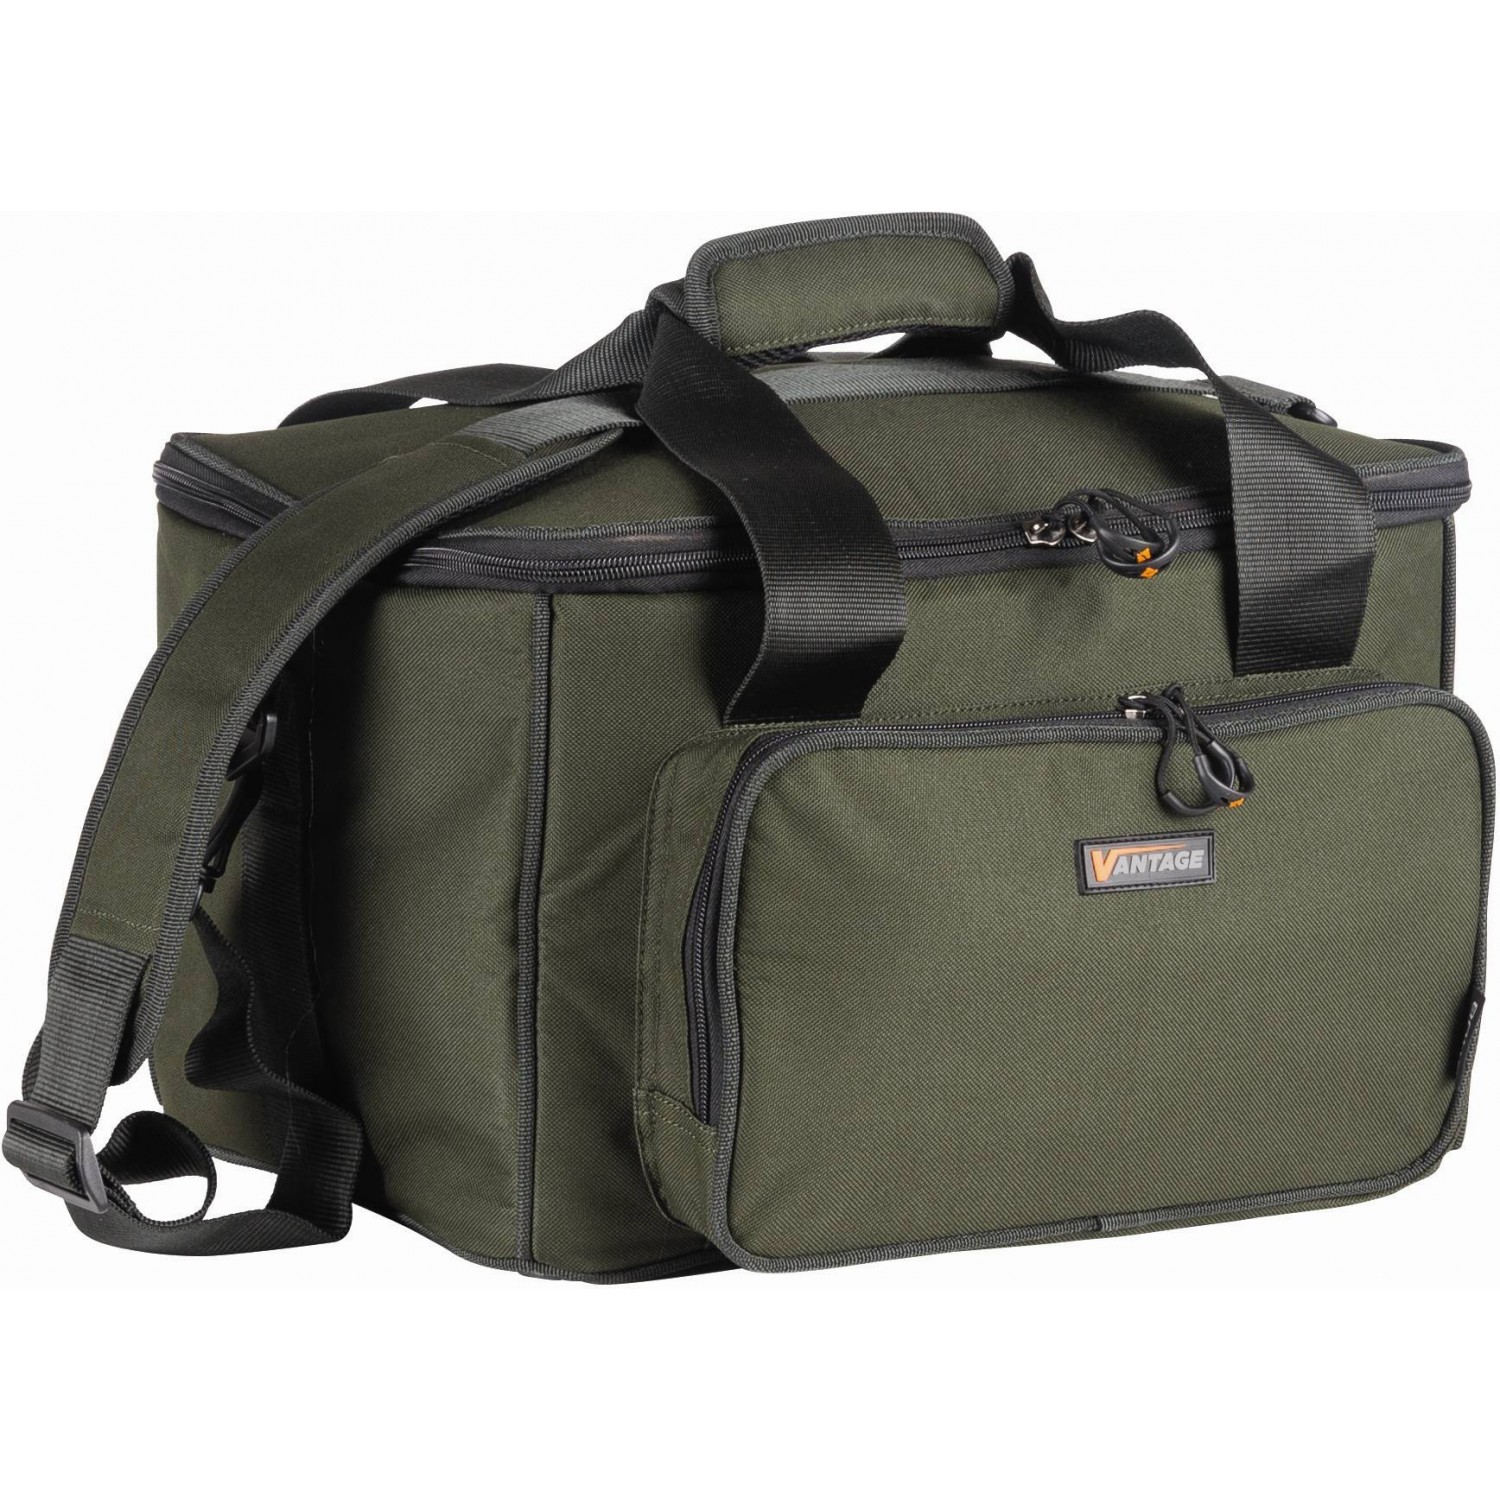 Chub VANTAGE INSULATED BAIT BAG